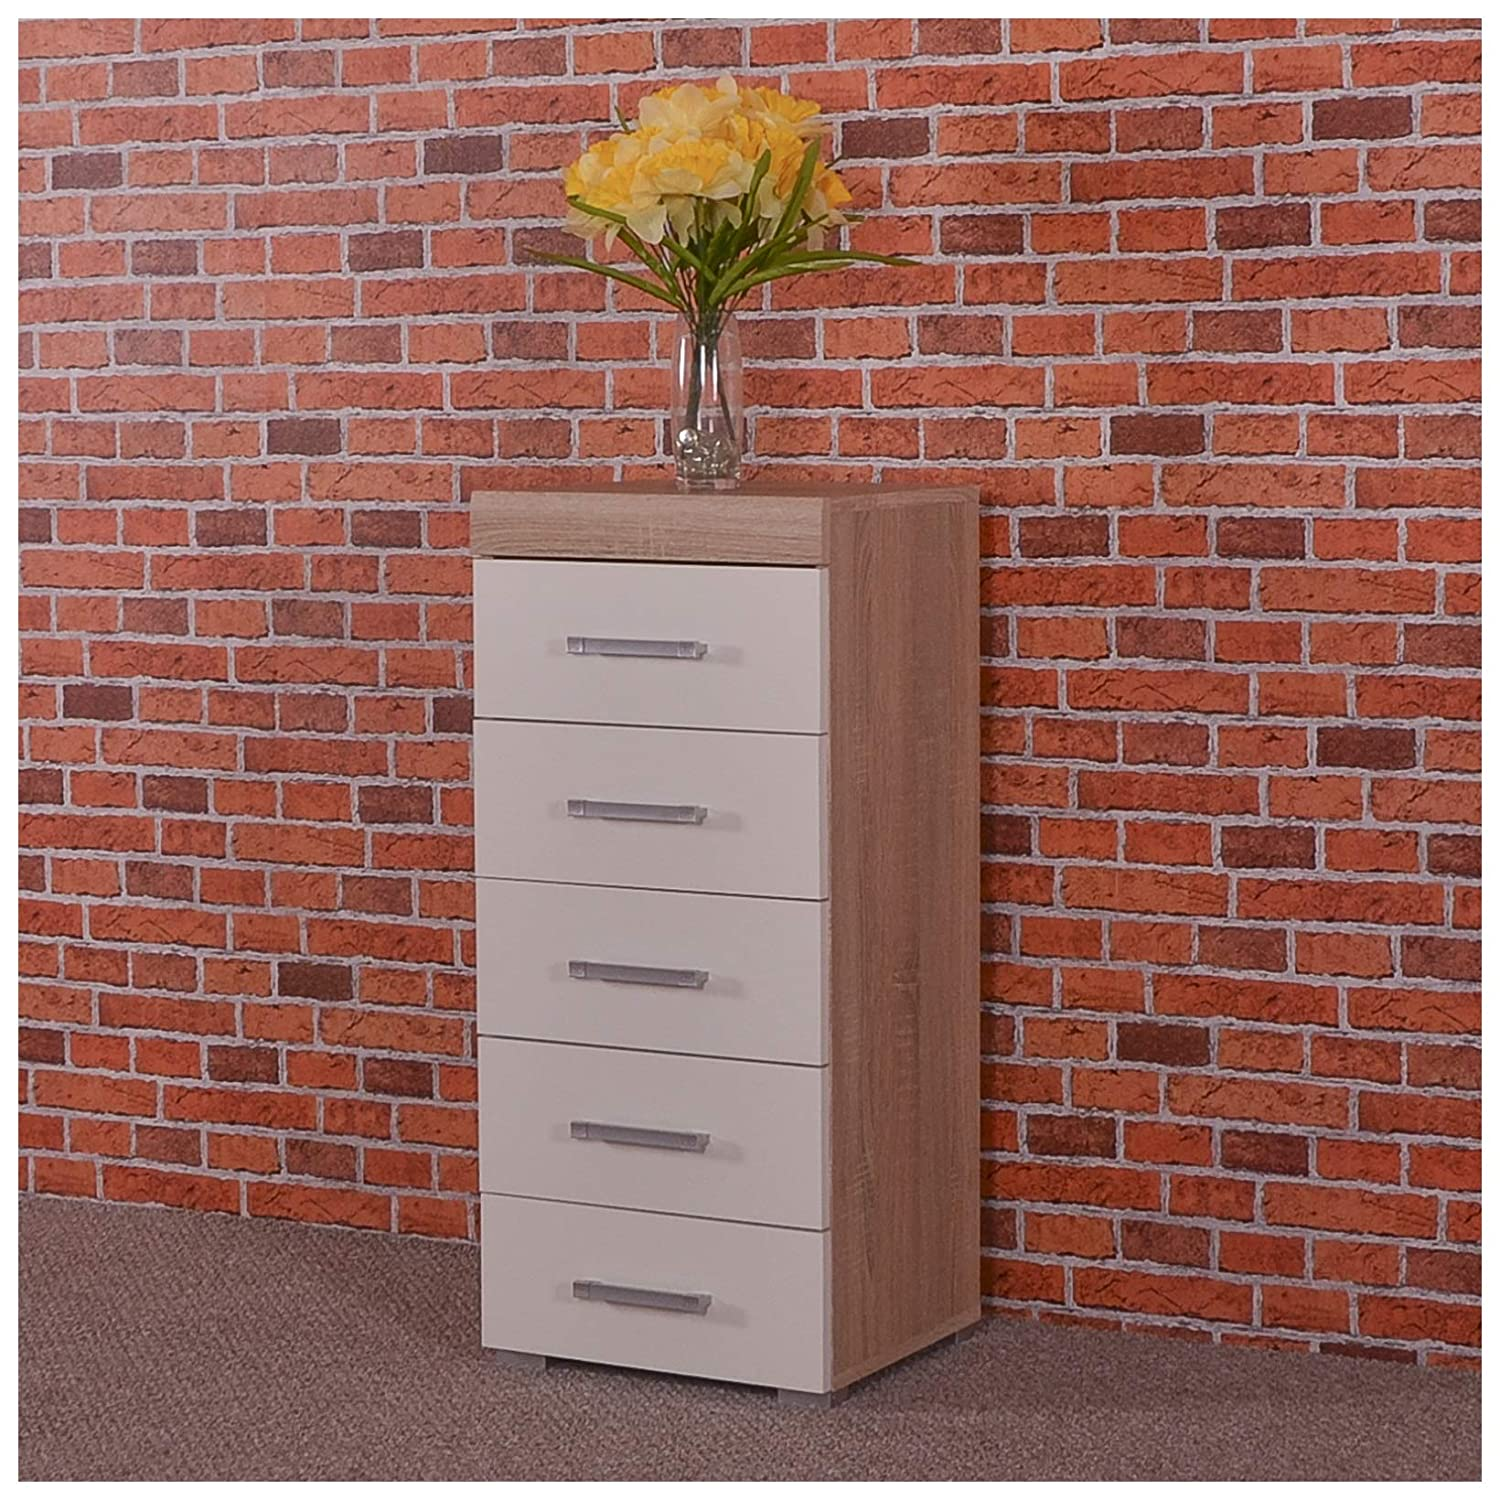 DRP Trading White & Sonoma Oak Tall Boy Chest of 5 Drawers Bedroom Furniture - Narrow Slim Draw